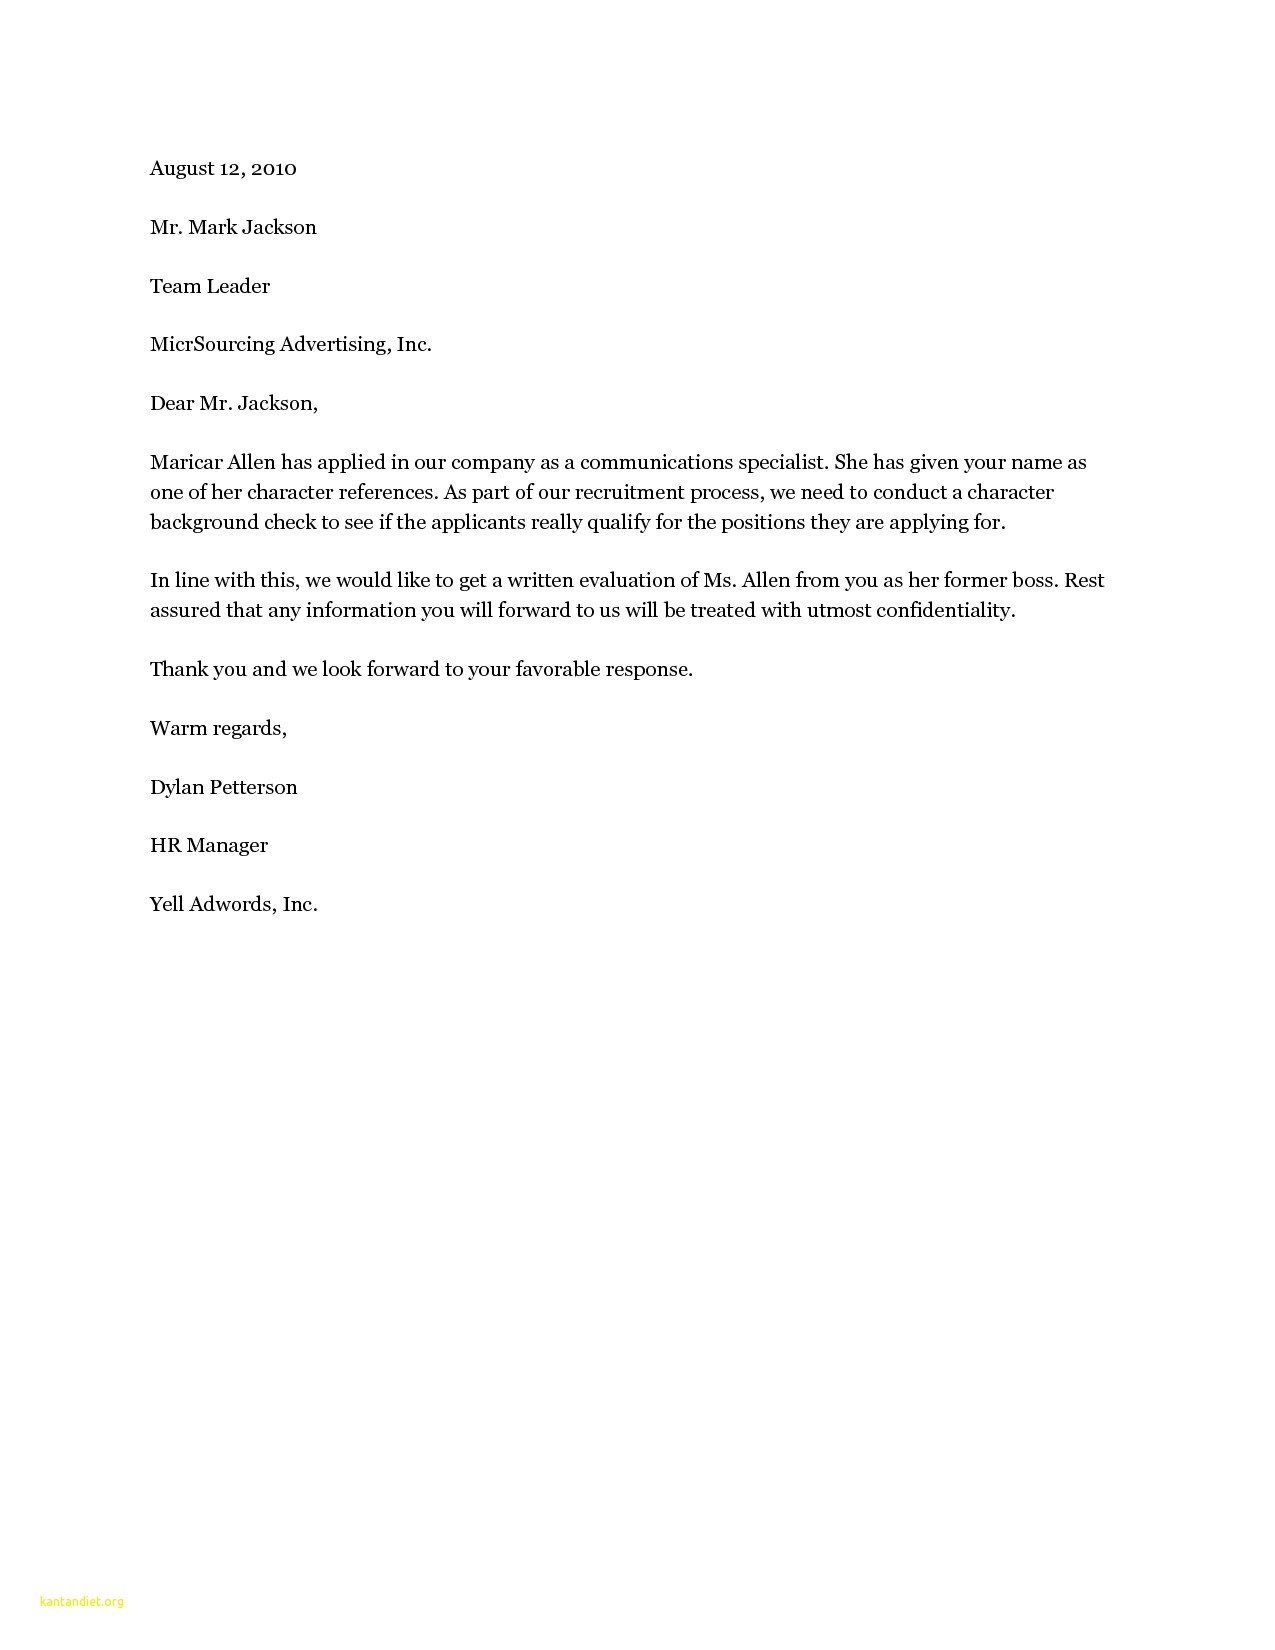 Work Reference Letter Template - Dear Hiring Manager Cover Letter Sample 19 Cover Letter Template